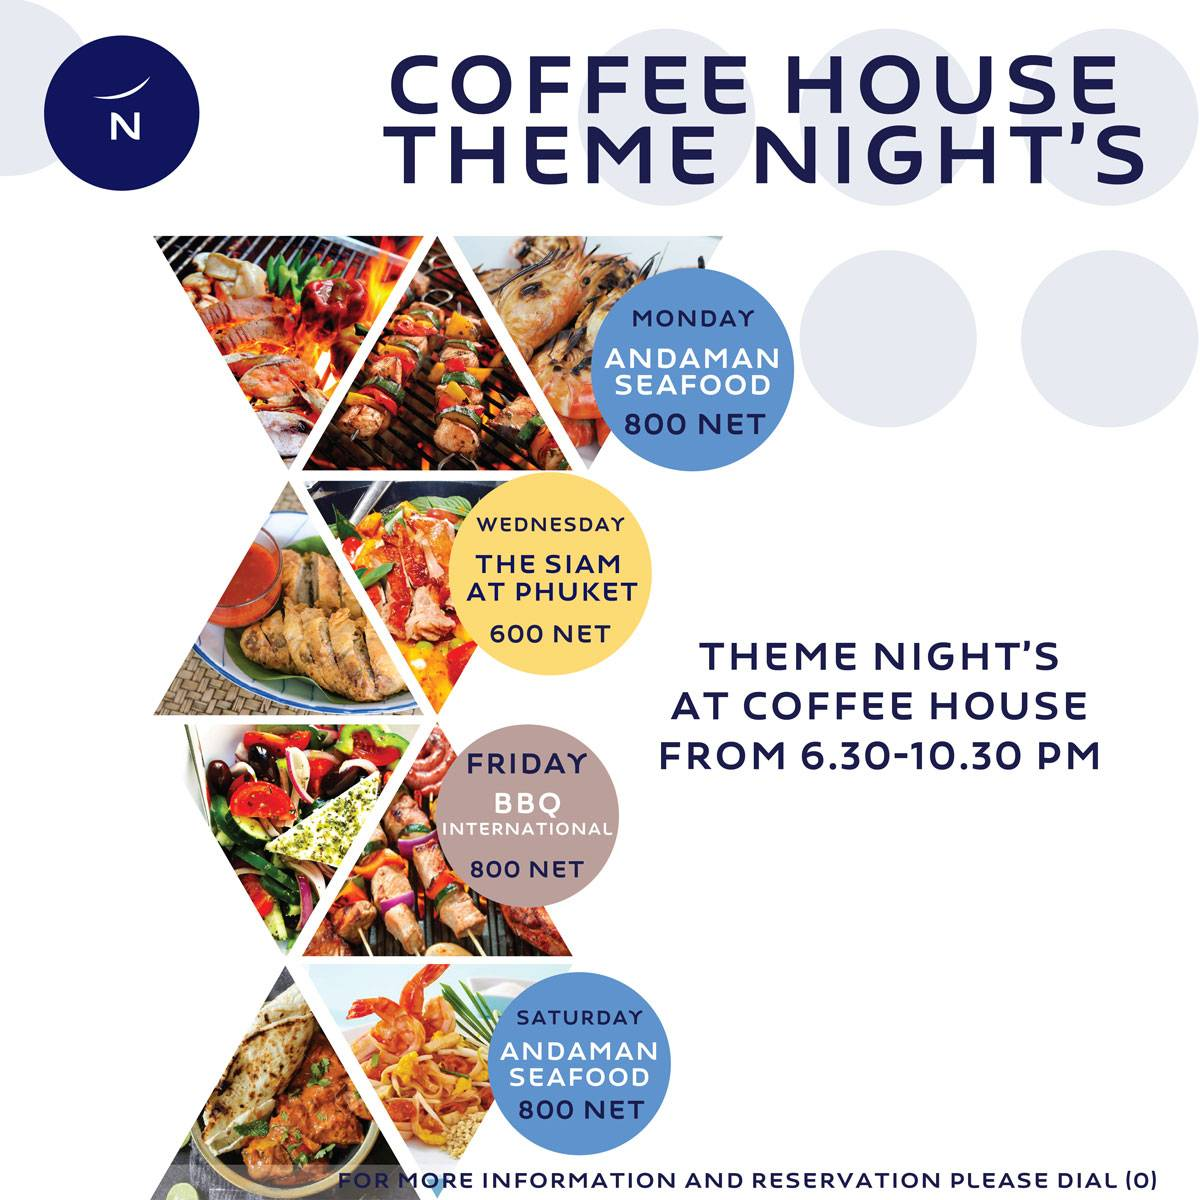 Buffet Theme Night's at Coffee House